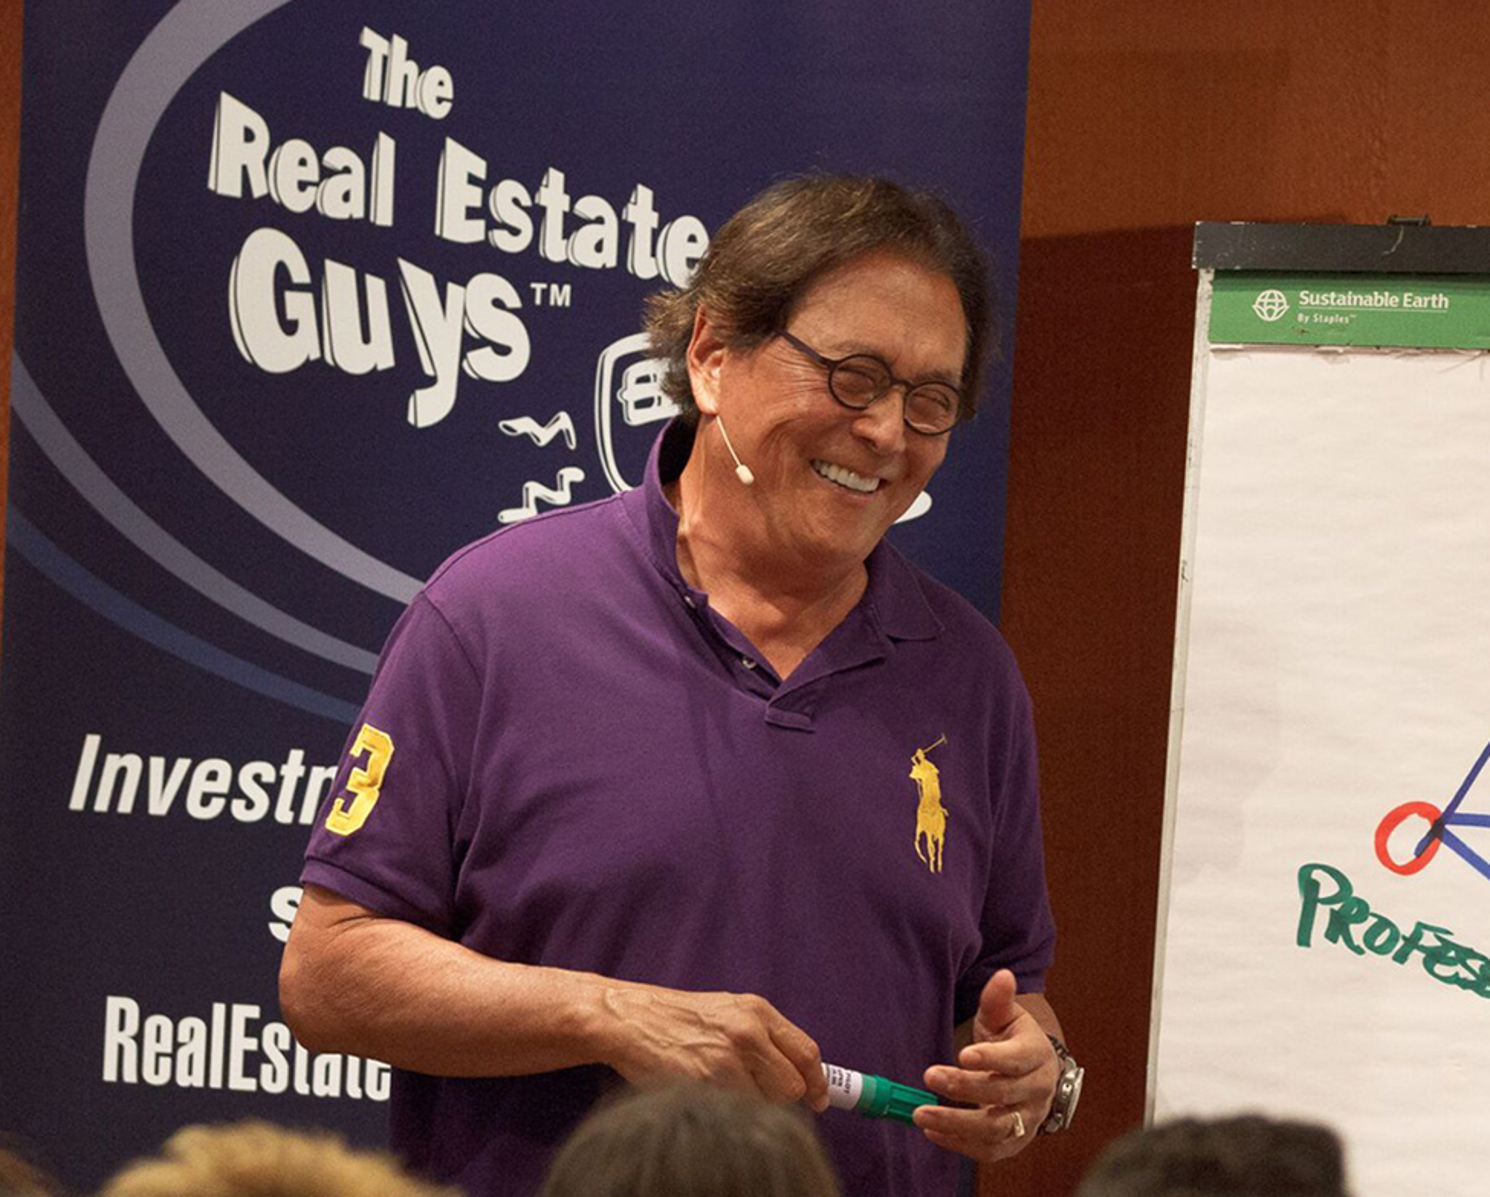 Rich Dad Poor Dad author Robert Kiyosaki teaches on The Real Estate Guys Investor Summit at Sea